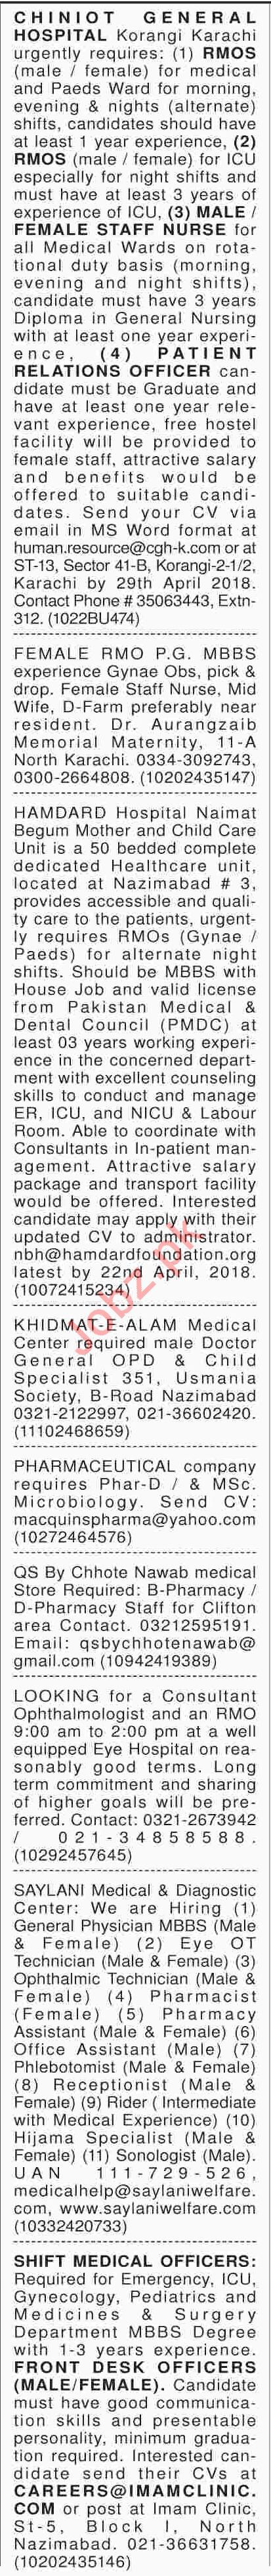 Paramedical Staff Jobs in Karachi 2018